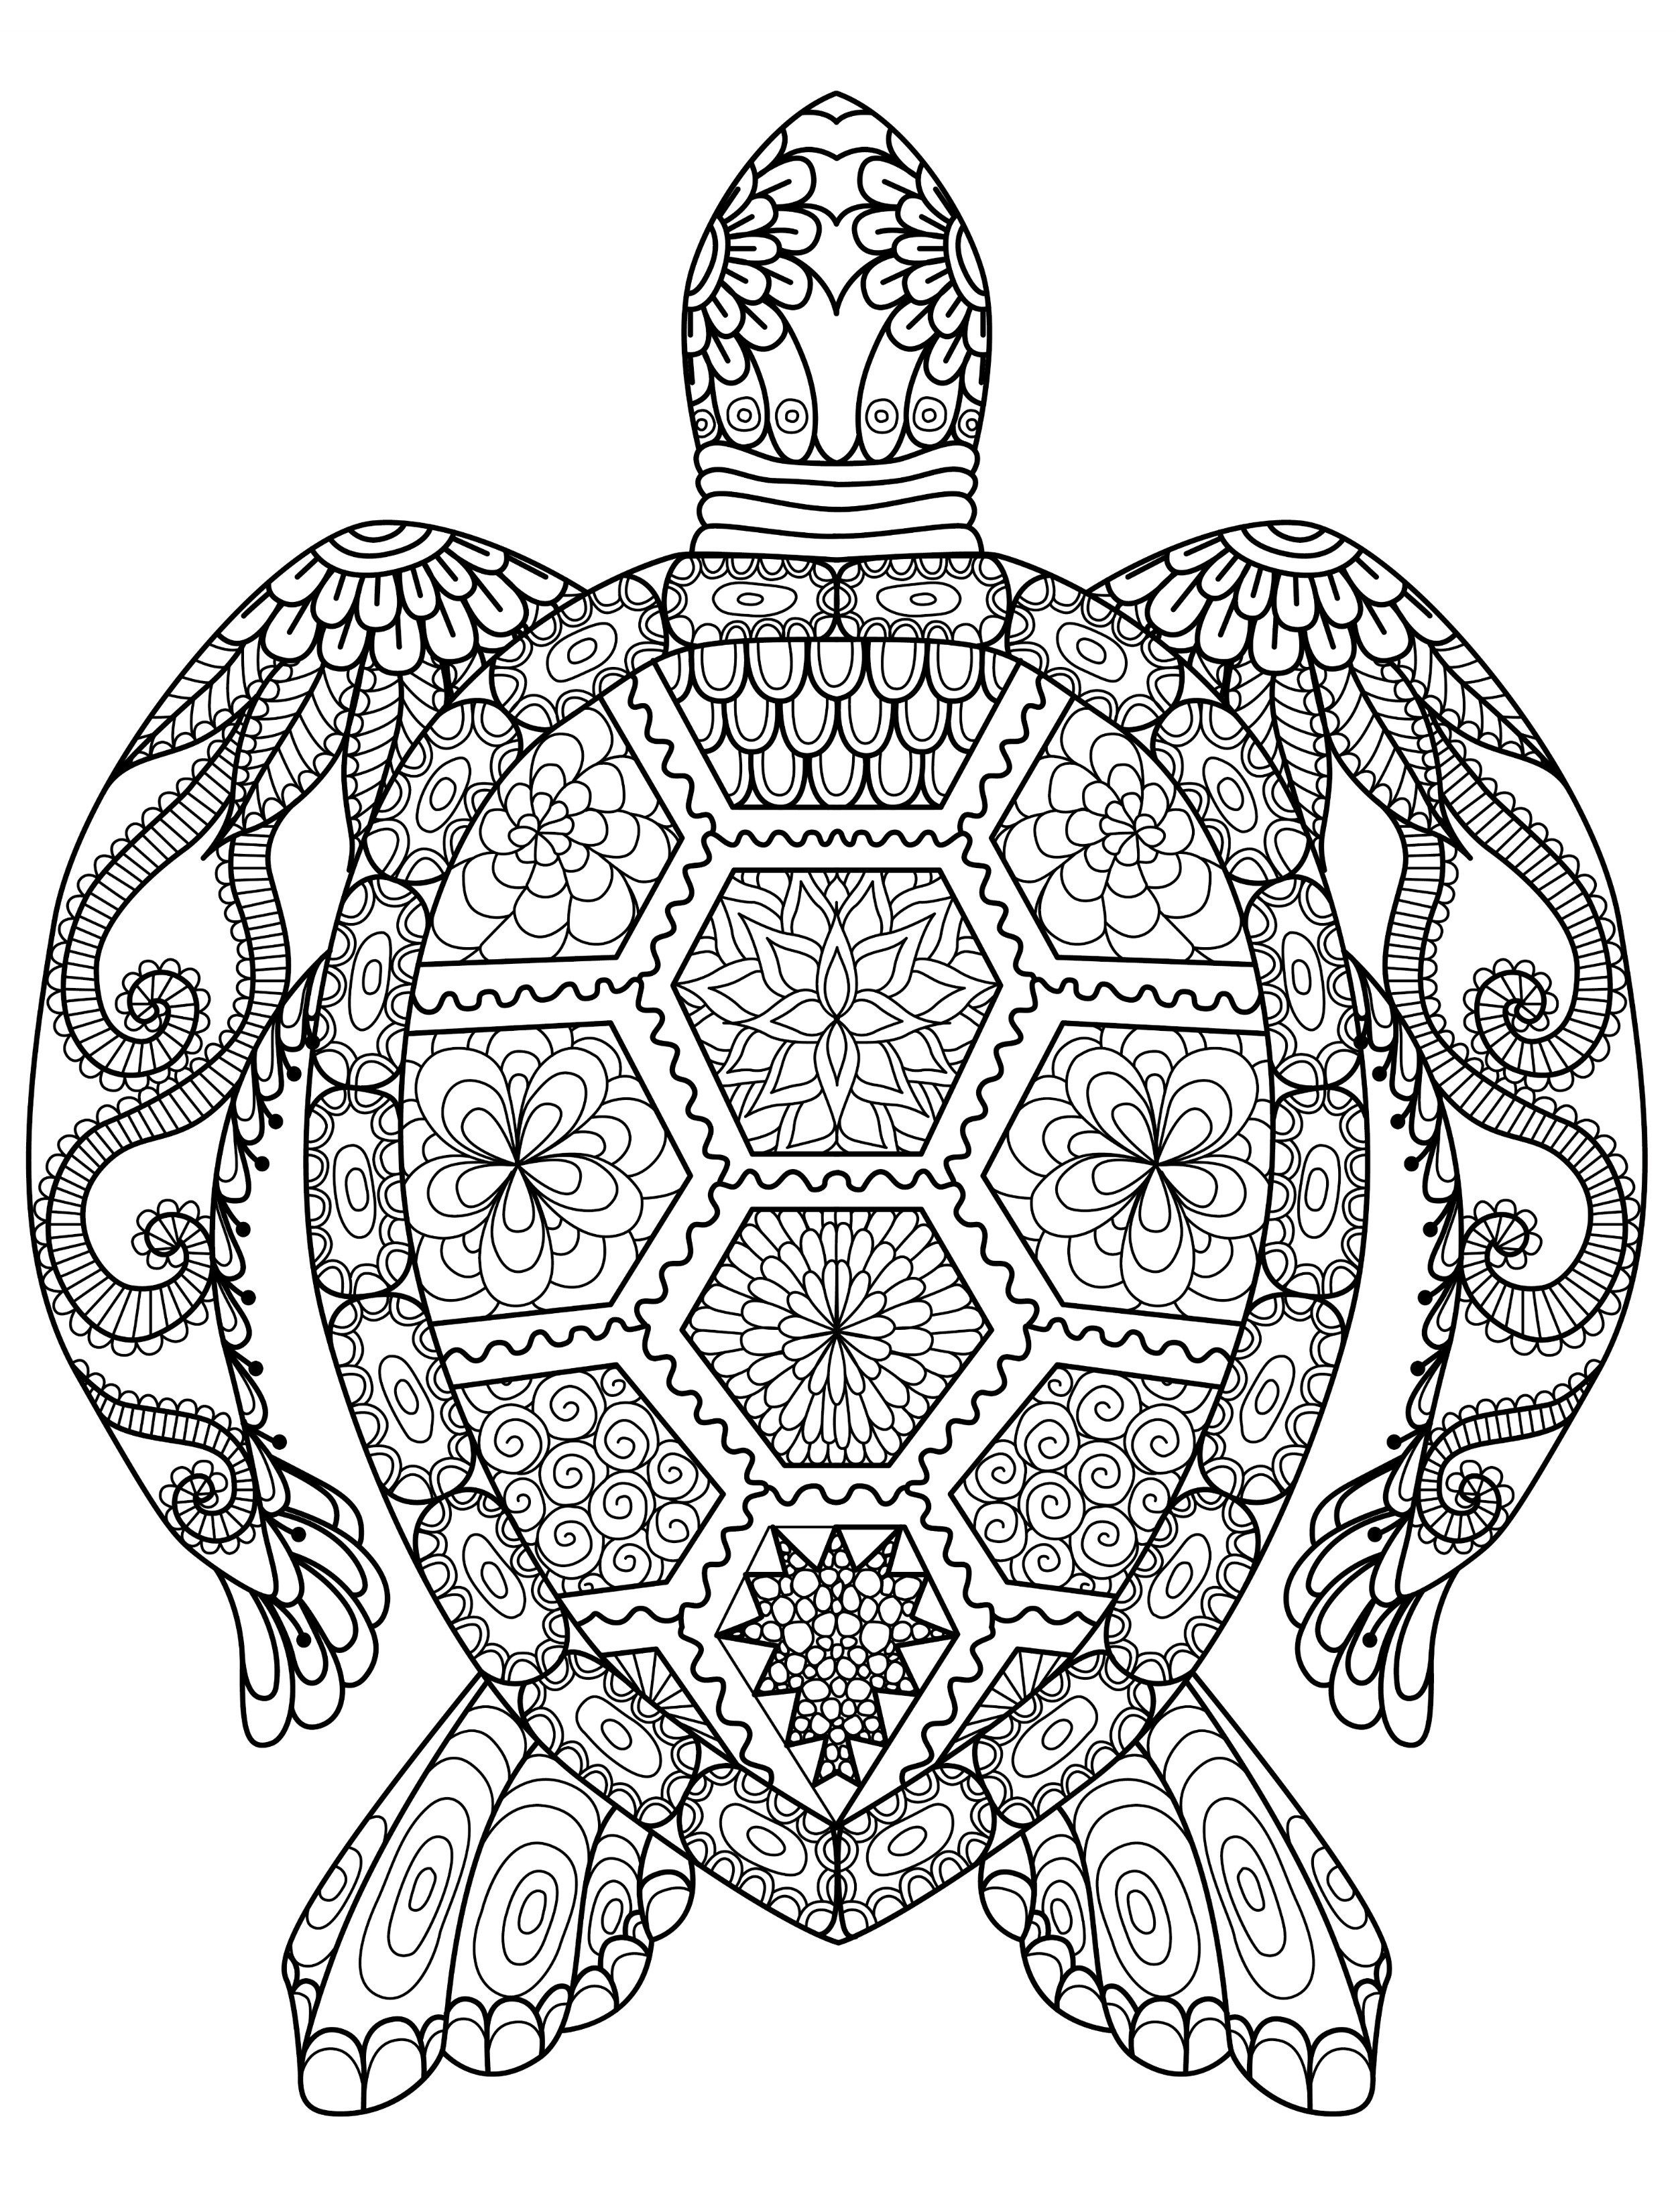 cool designs to color in cool skull design coloring pages coloring home designs color cool to in